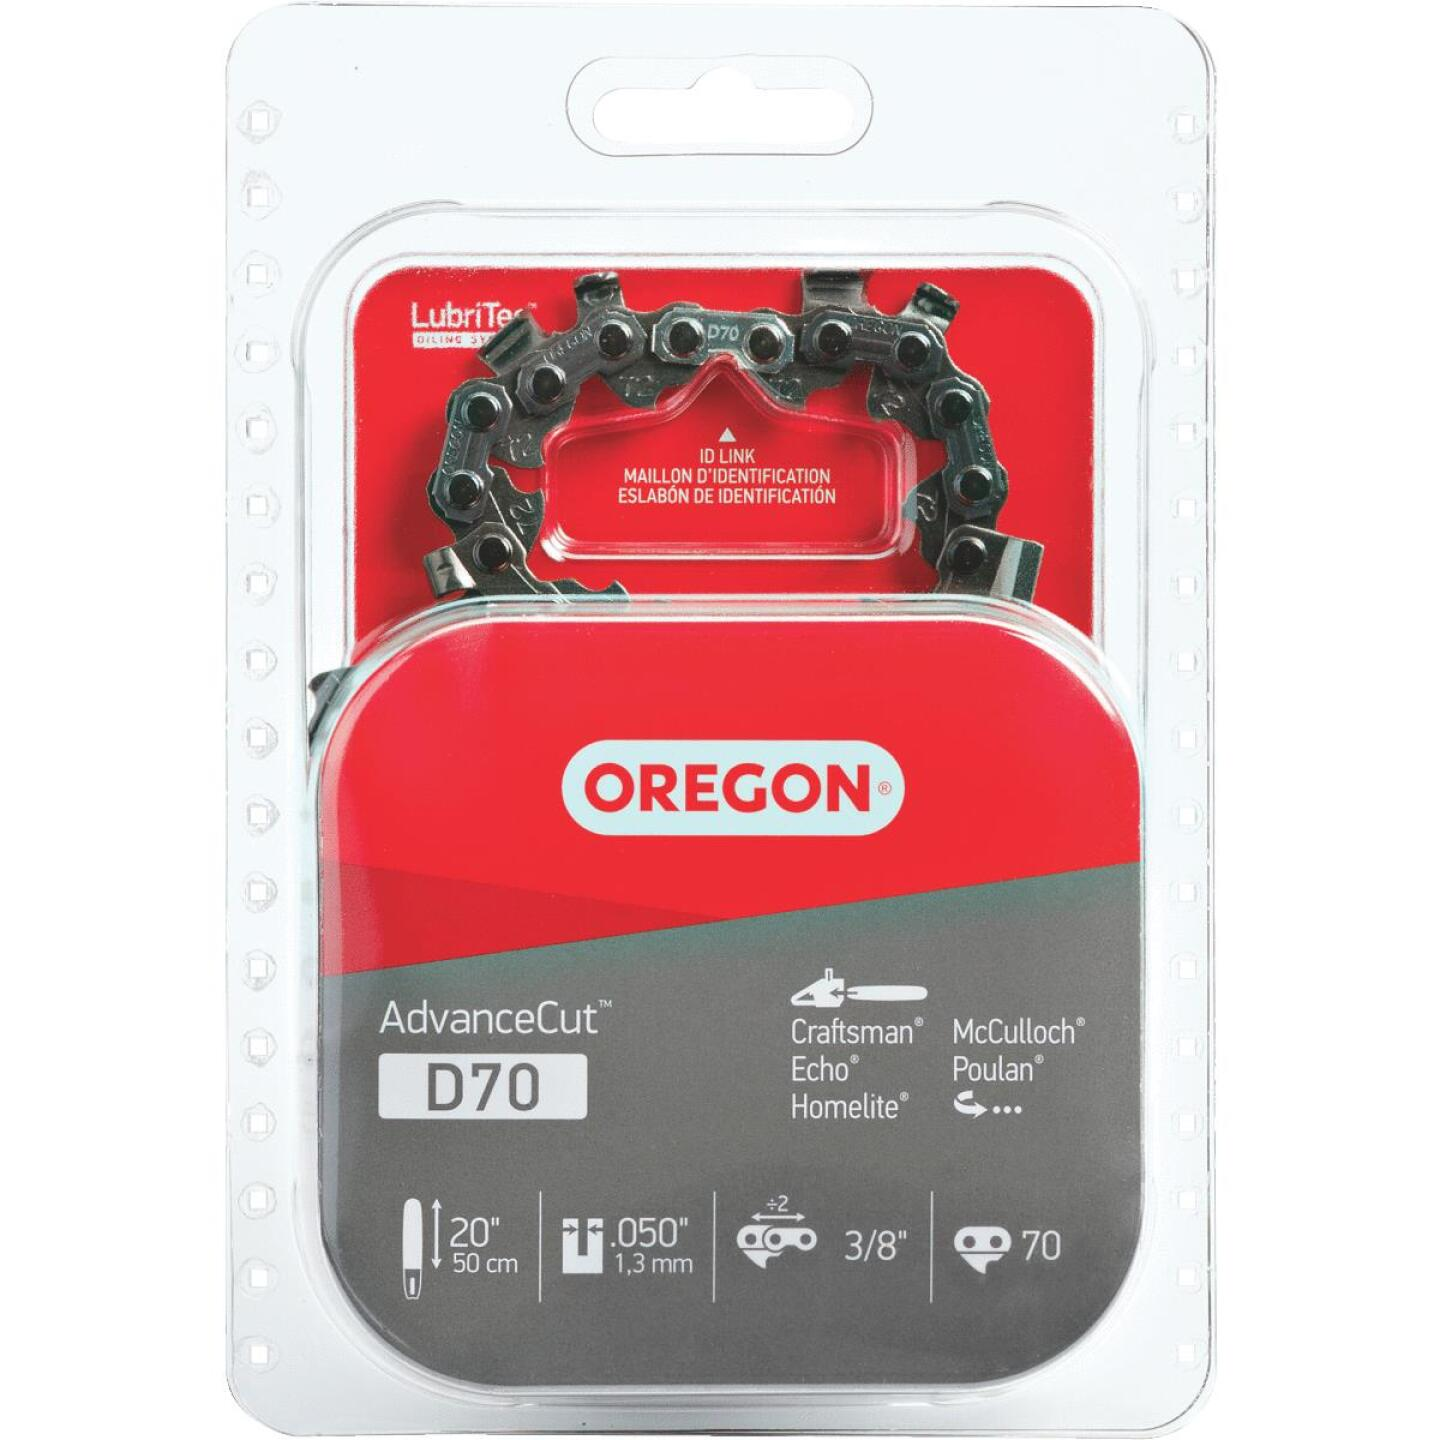 Oregon D70 20 In. Chainsaw Chain Image 1